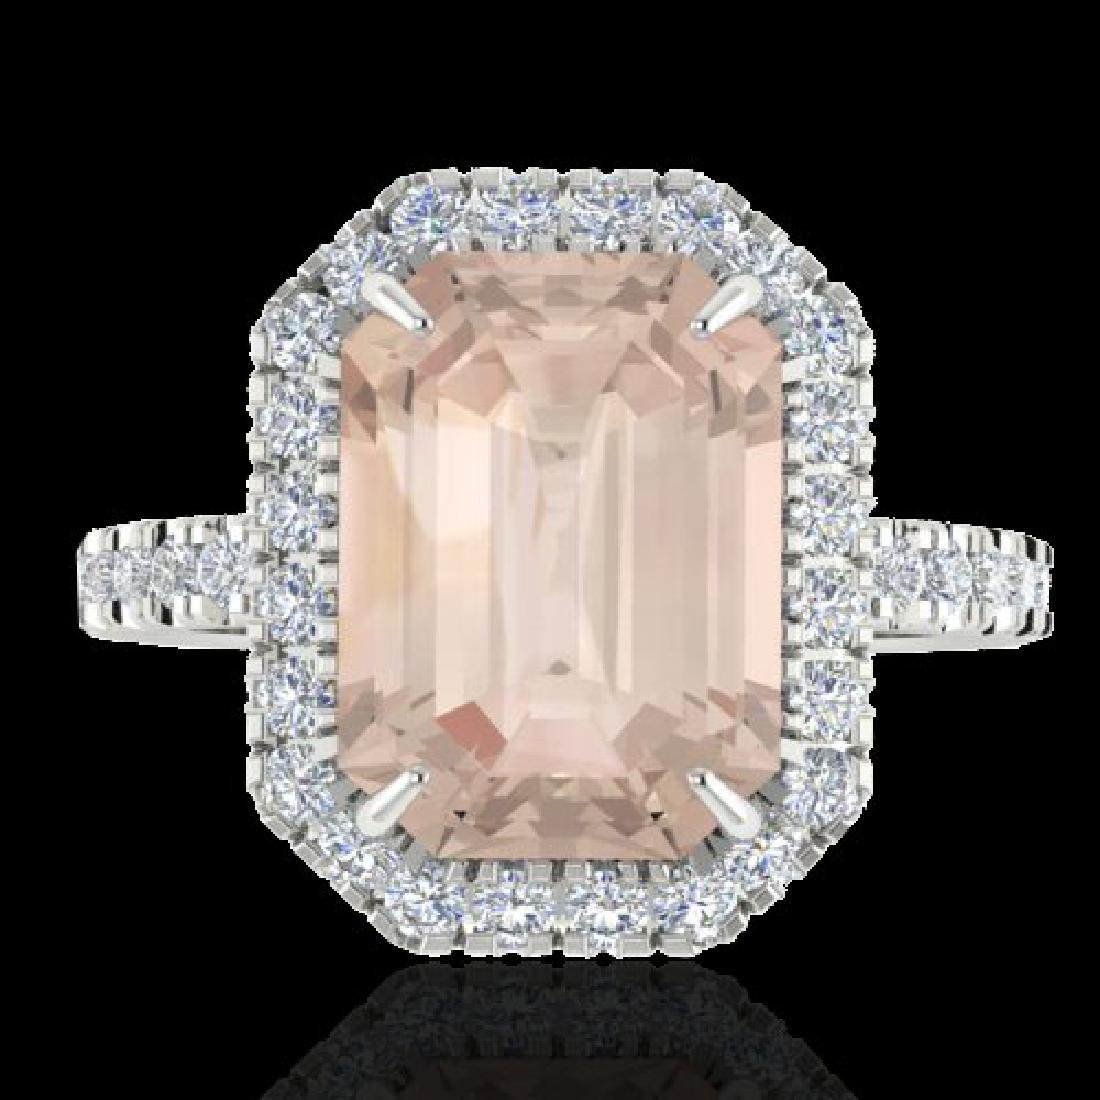 4.50 CTW Morganite & Micro Pave VS/SI Diamond Halo Ring